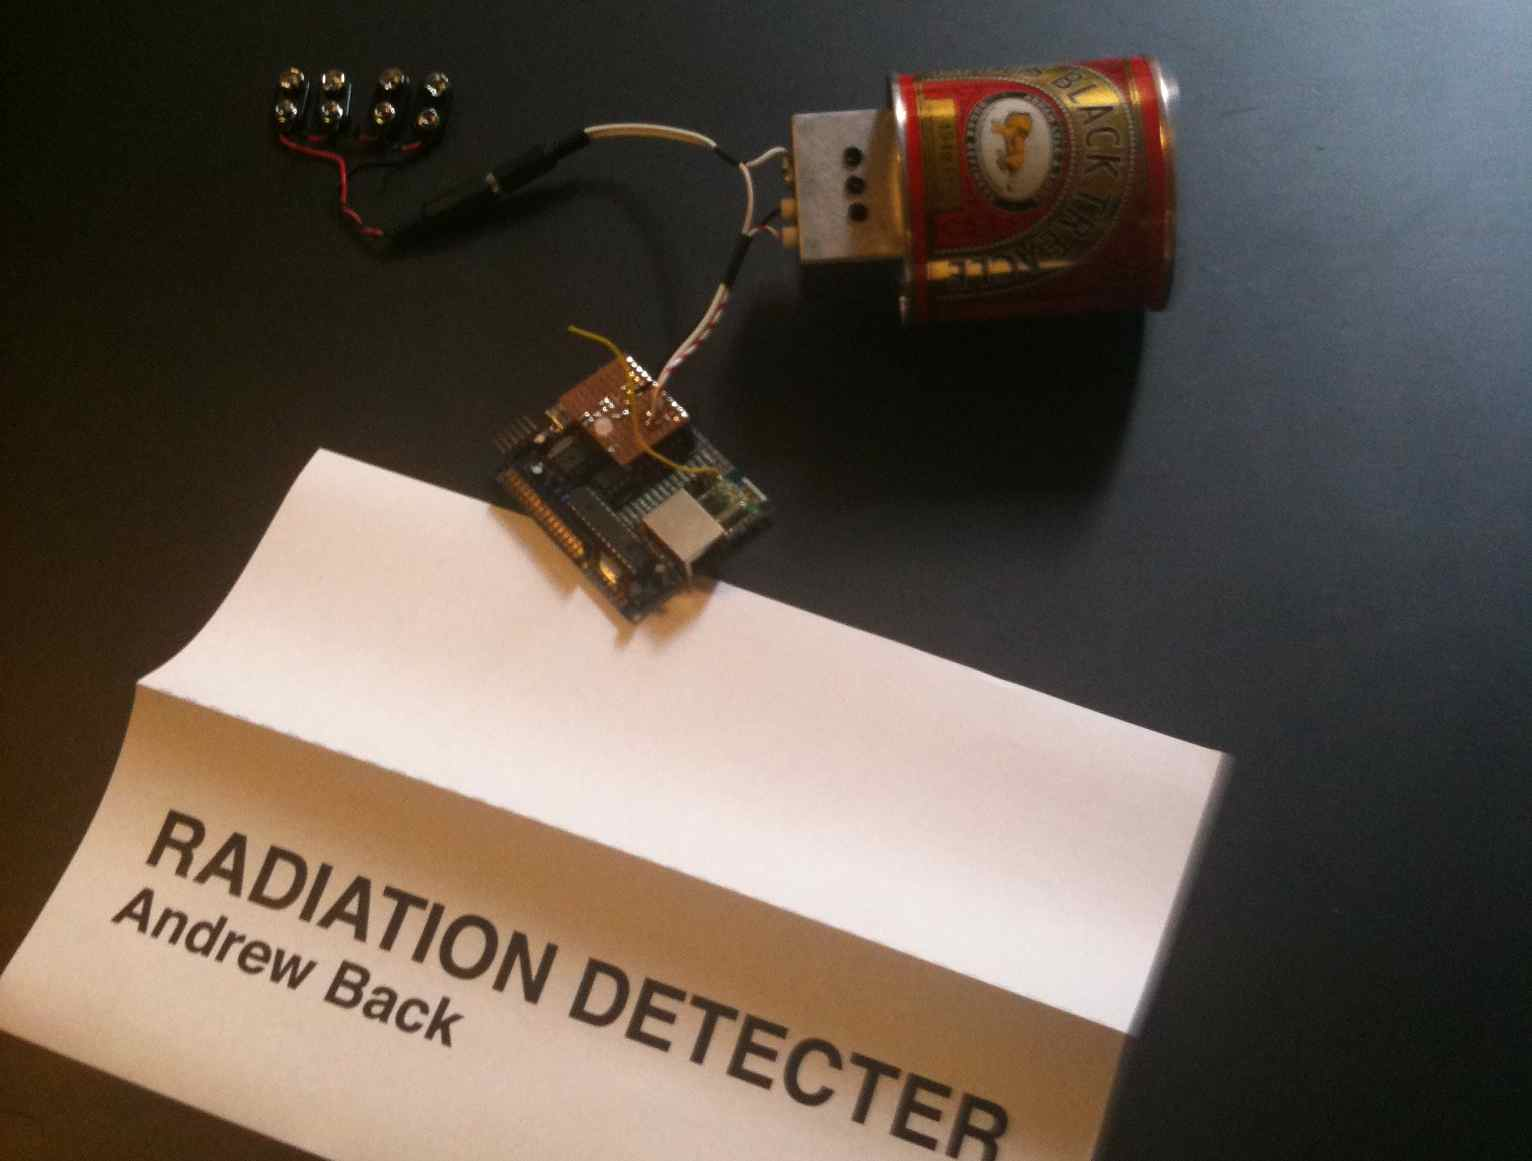 Andrew Backs radiation detector